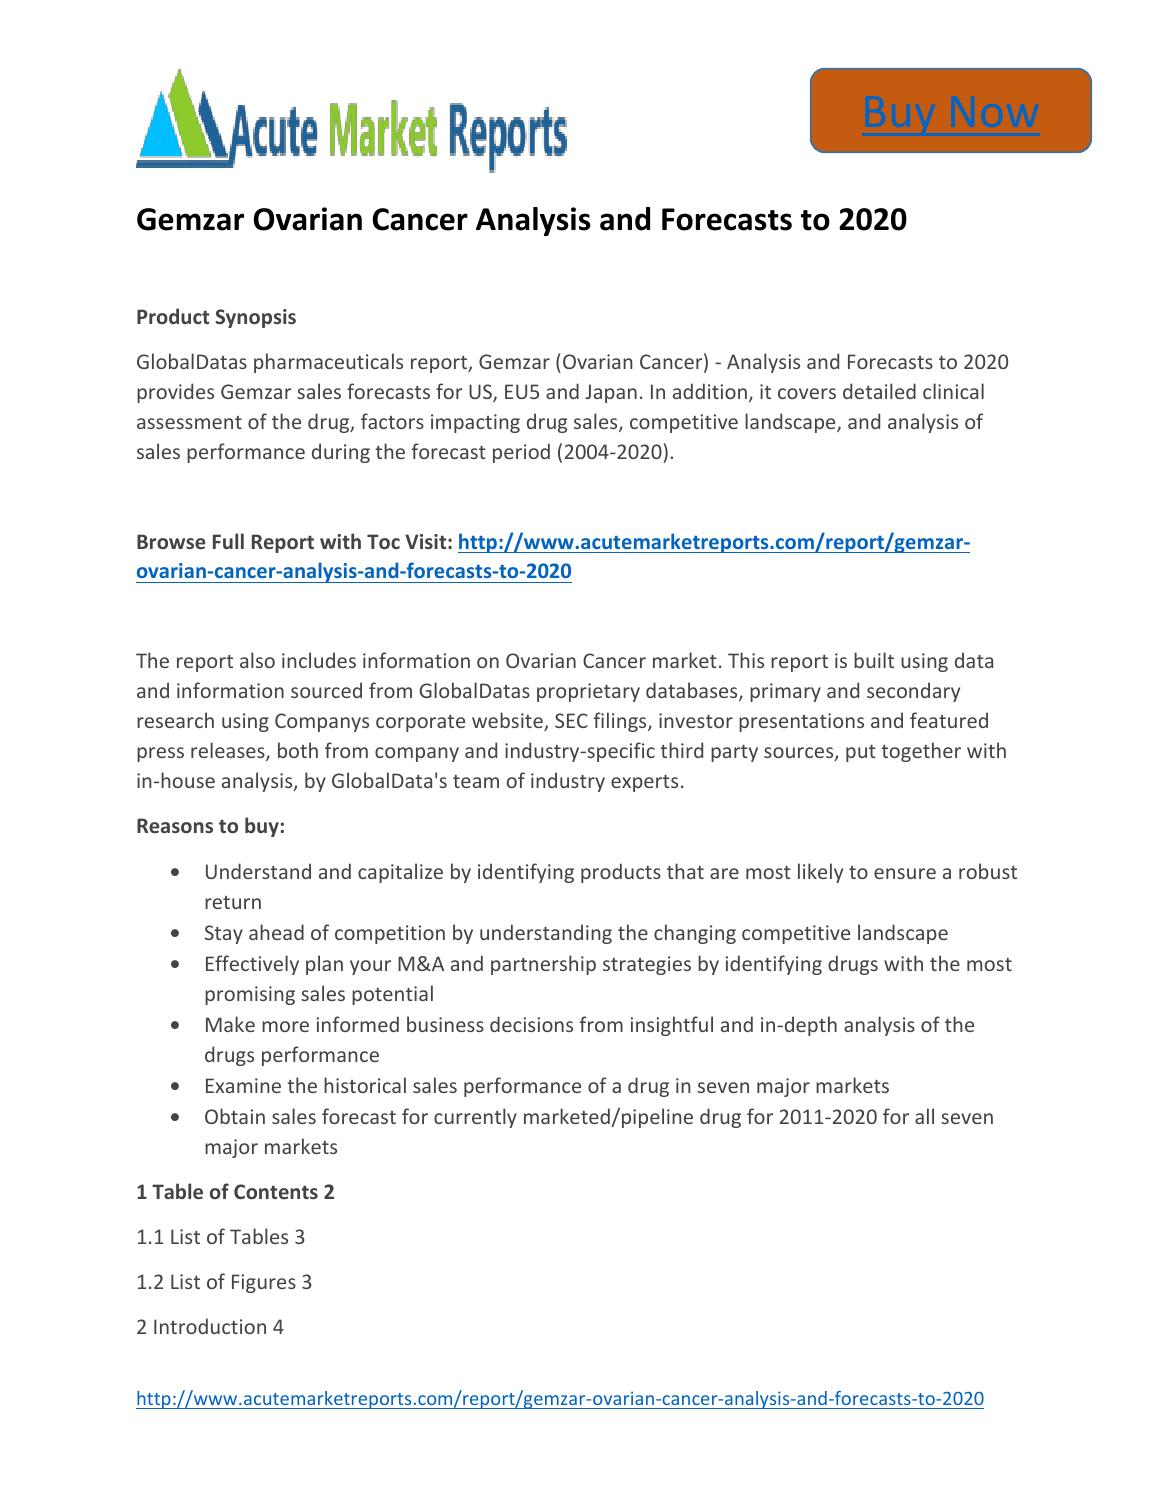 Latest Reports Gemzar Ovarian Cancer 2020 Market By Acute Market Reports By Acute Market Reports Issuu